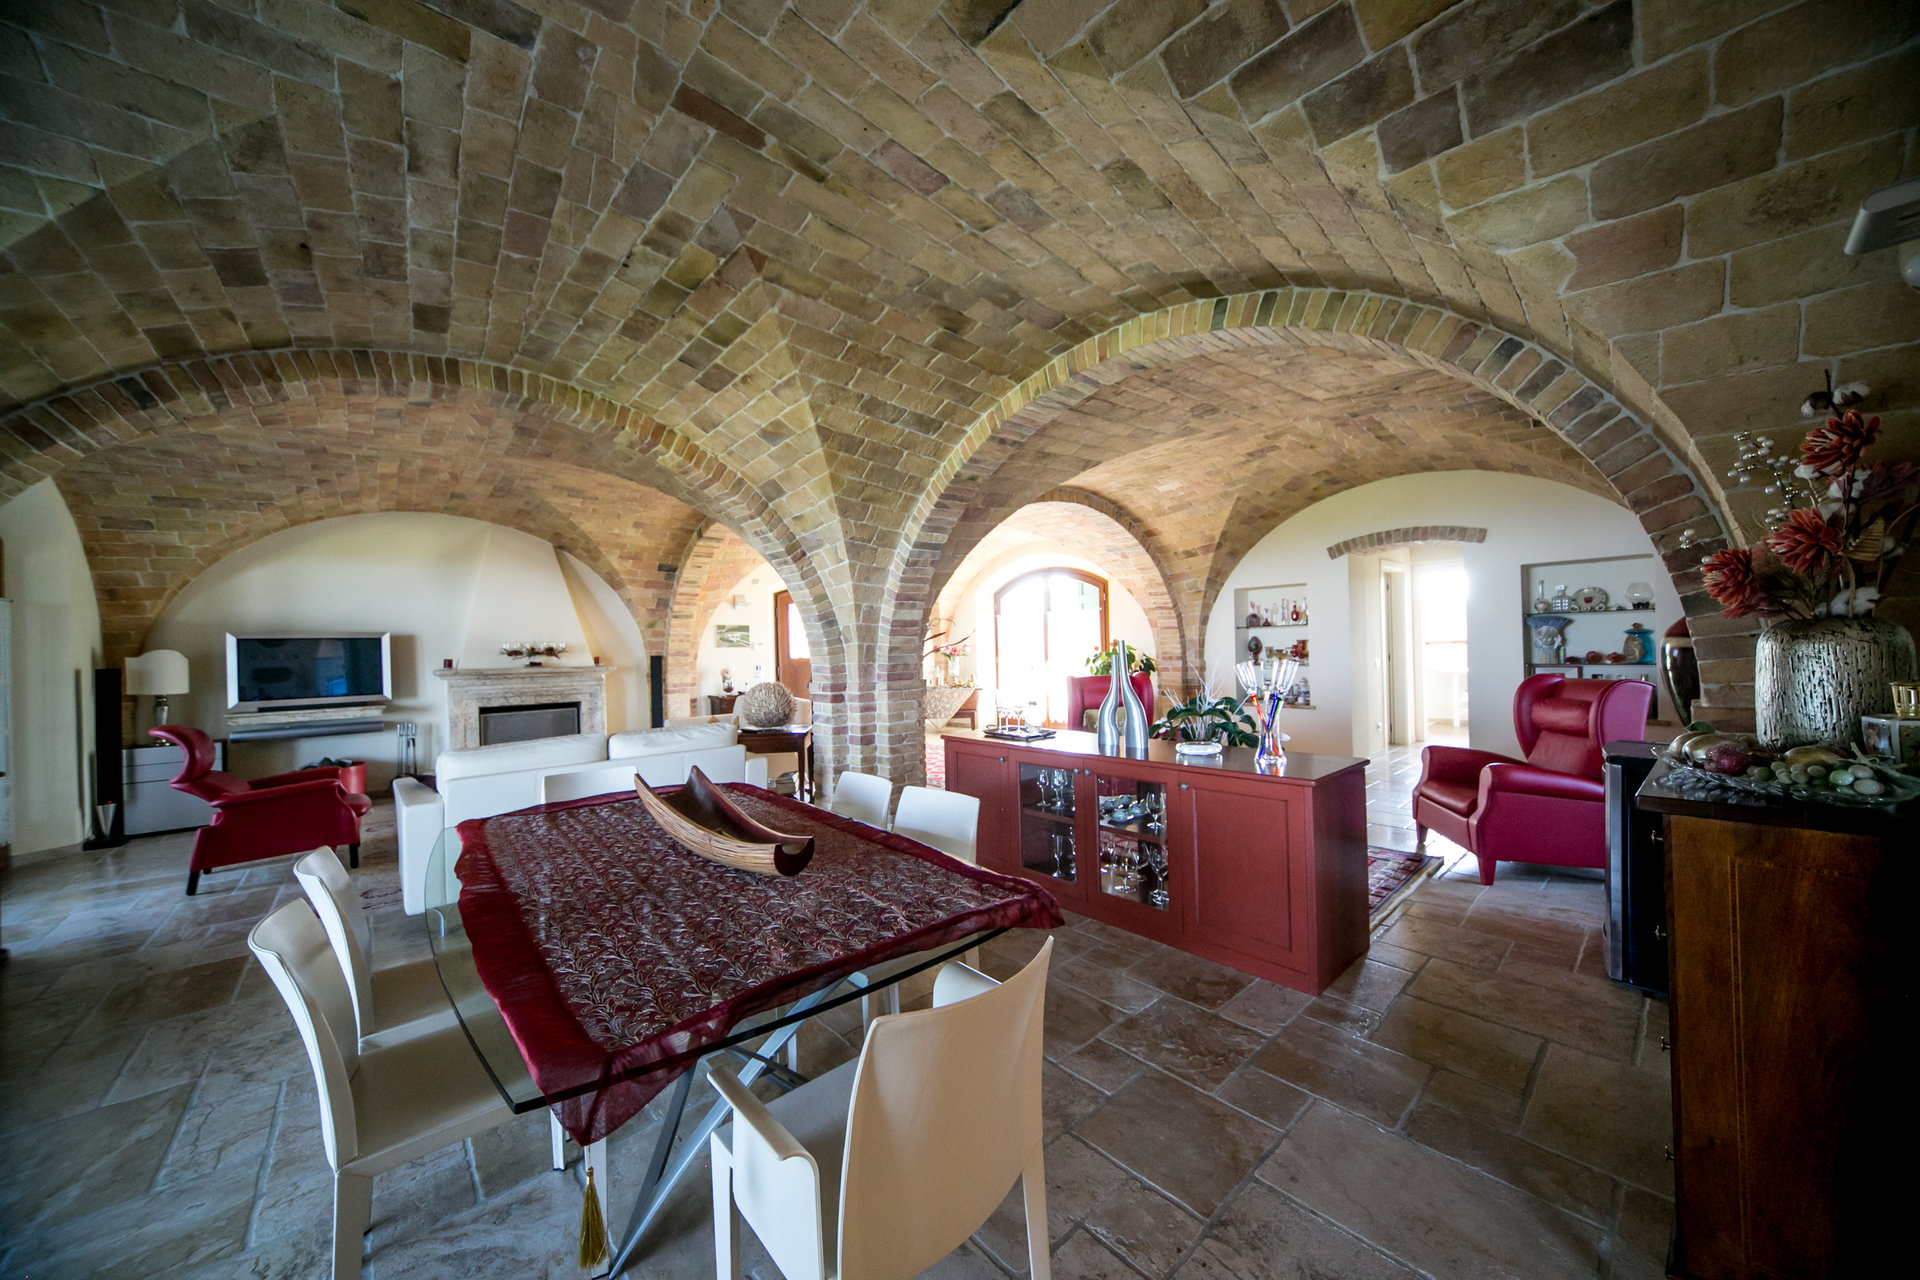 2 villas and 2 ha of land with olive grove and vineyard of 0,5 ha